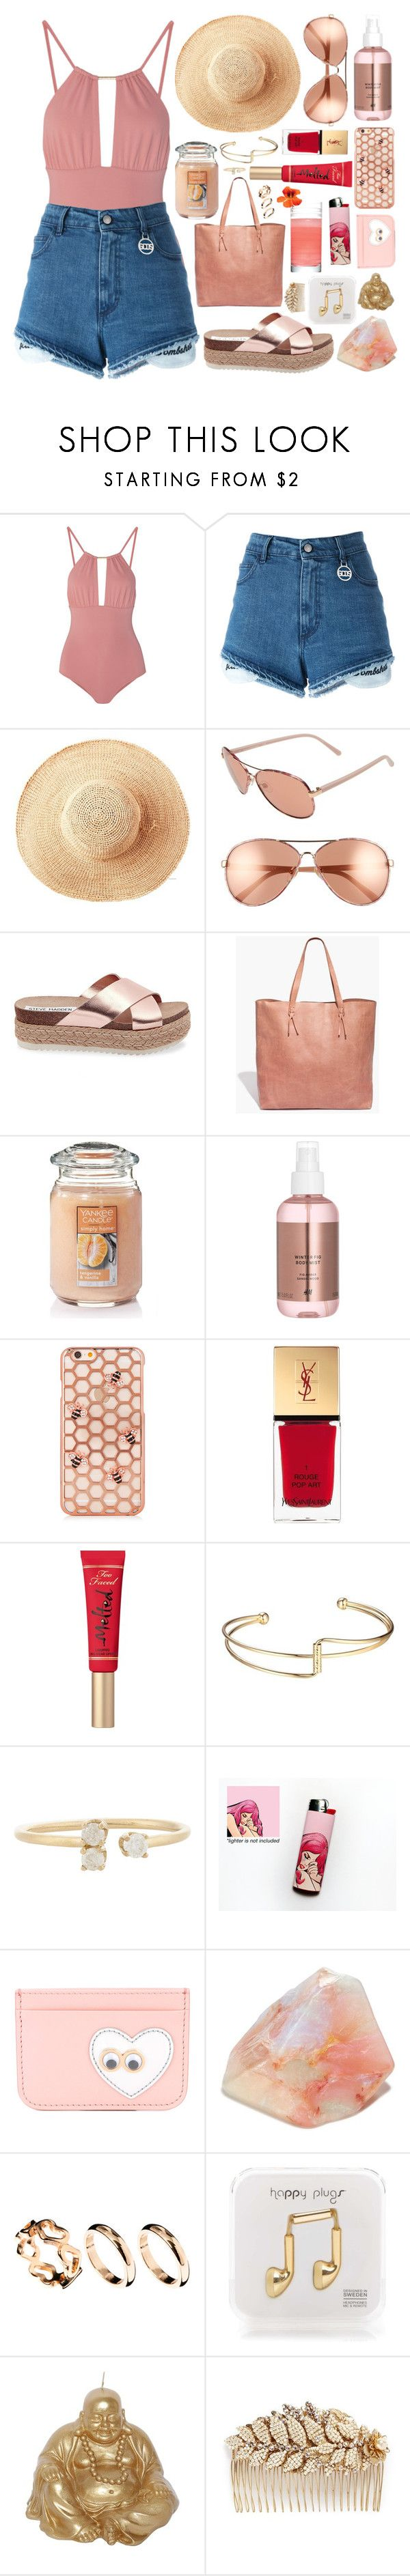 """""""Untitled #781"""" by clary94 ❤ liked on Polyvore featuring Melissa Odabash, GCDS, Toast, Diane Von Furstenberg, Steve Madden, Madewell, Yankee Candle, Yves Saint Laurent, Too Faced Cosmetics and Loren Stewart"""